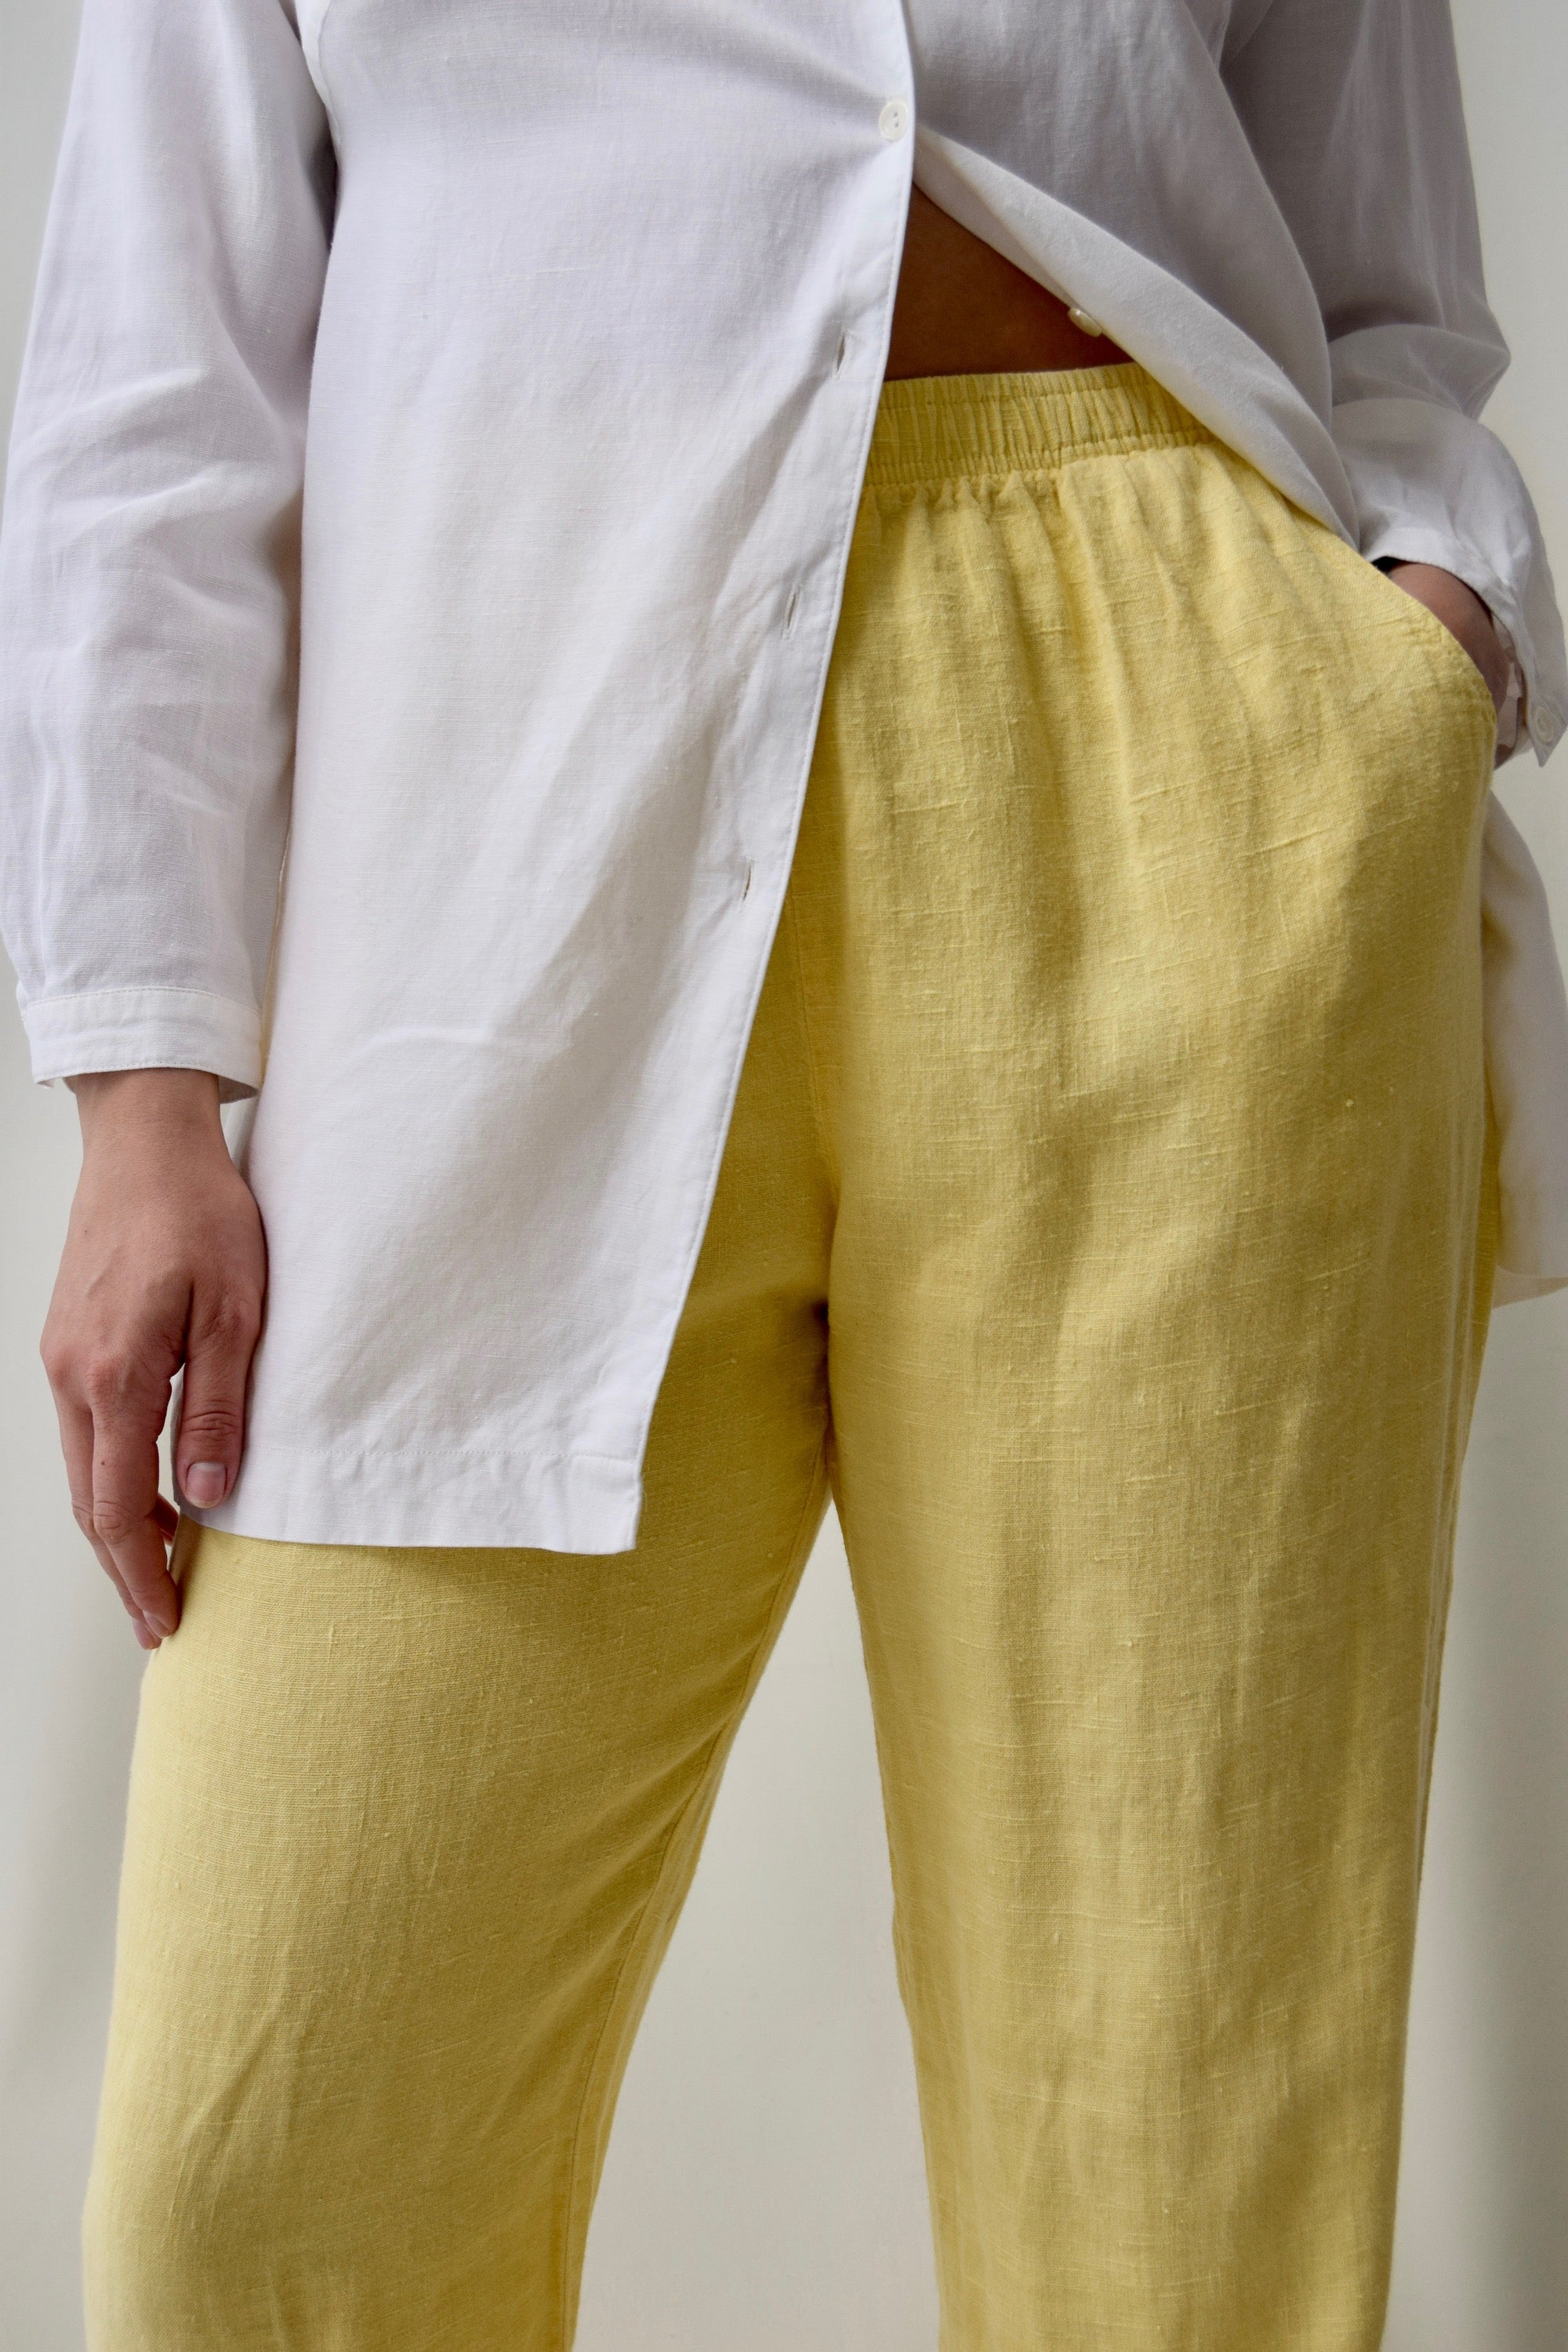 Buttercup Linen Fancy Loungewear Trousers